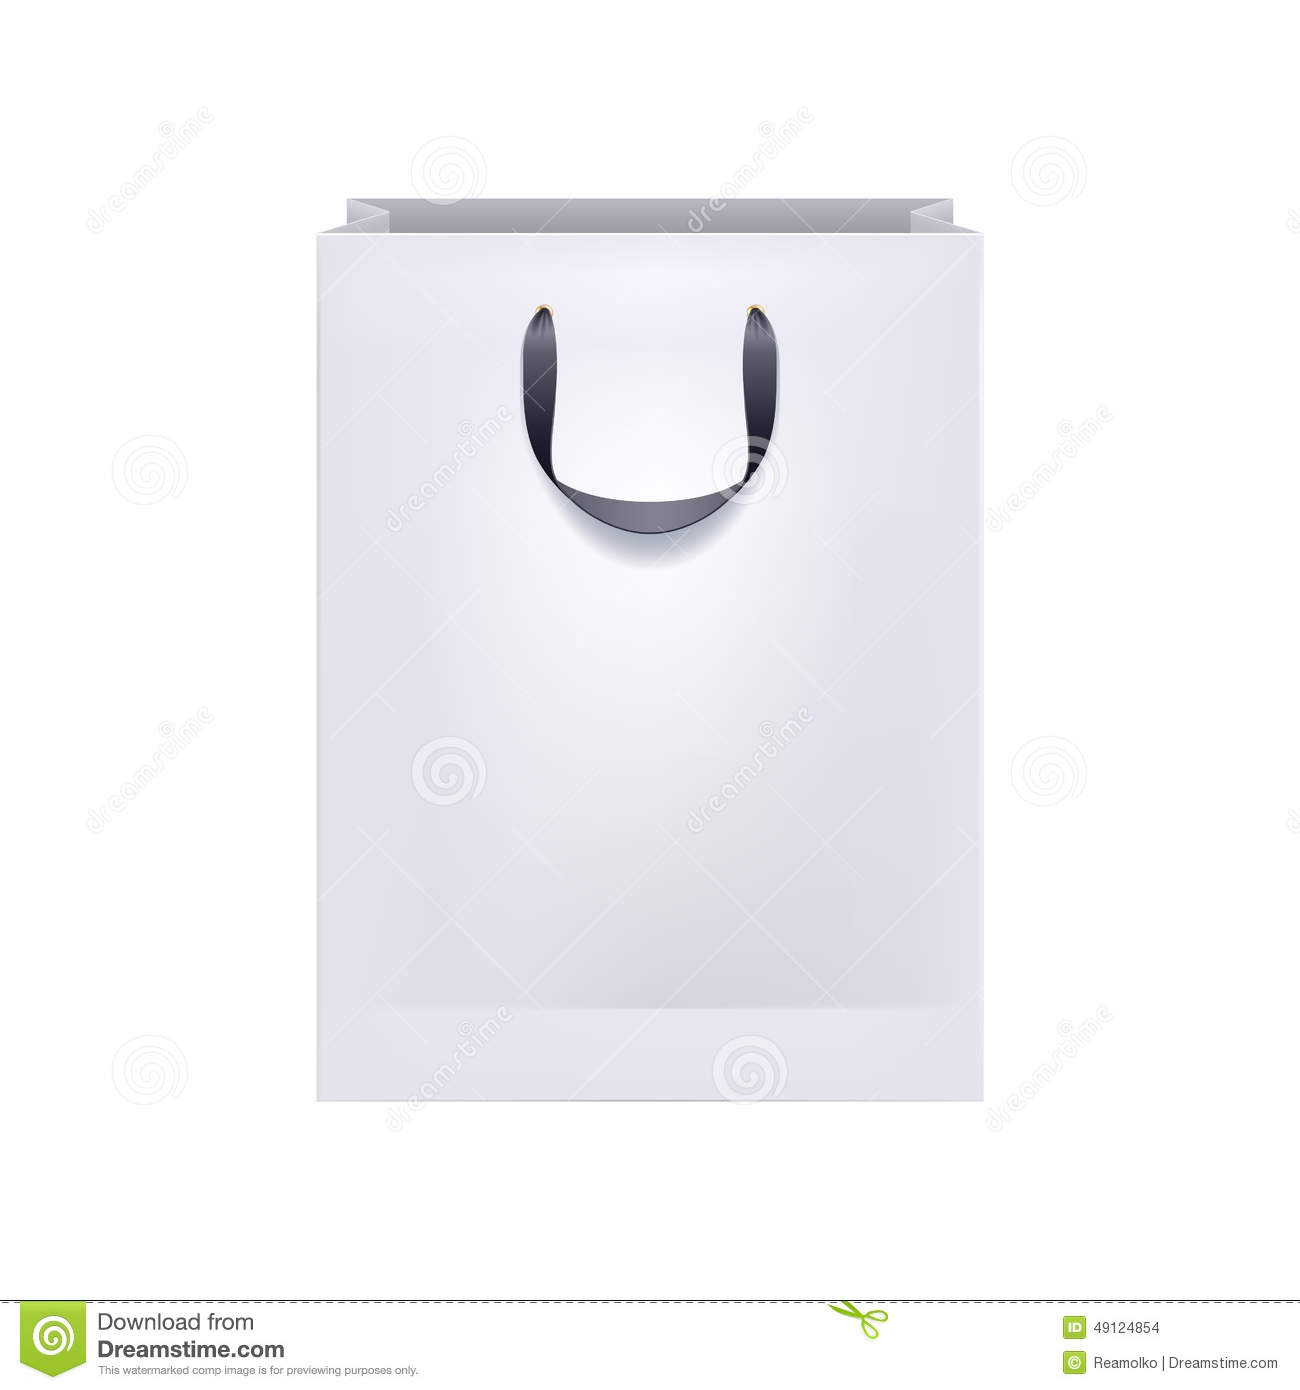 Blank White Paper Bag With Black Handles. Stock Vector ...White Paper Bag Vector